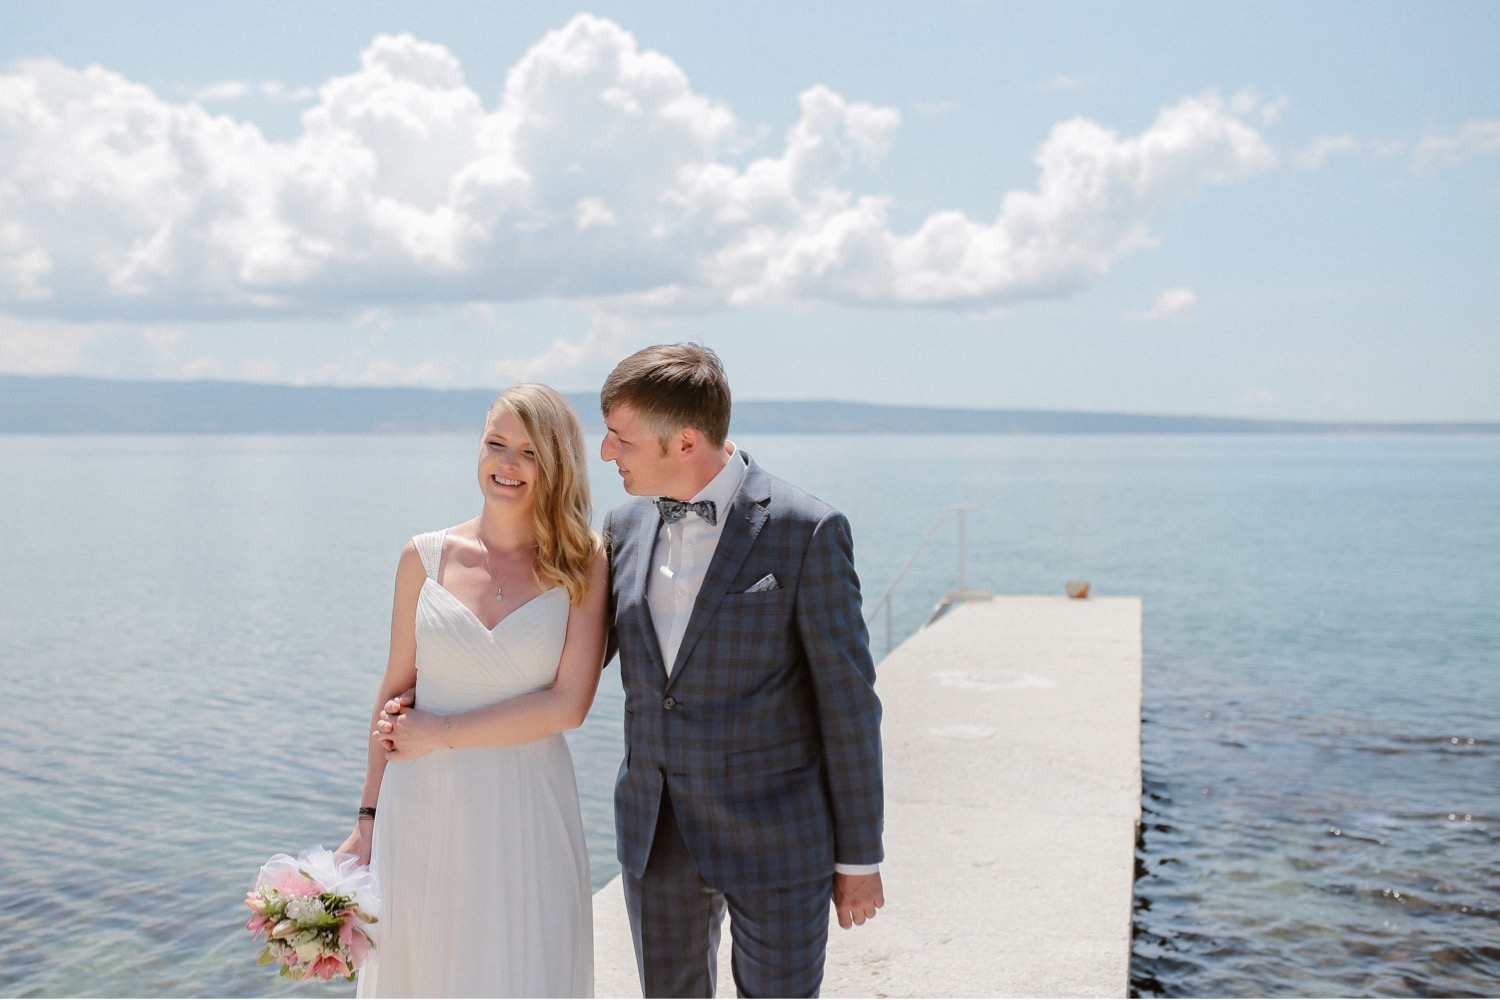 Croatia beach elopement hilke thomas love and ventures photography 04 | Croatia Elopement Photographer and Videographer